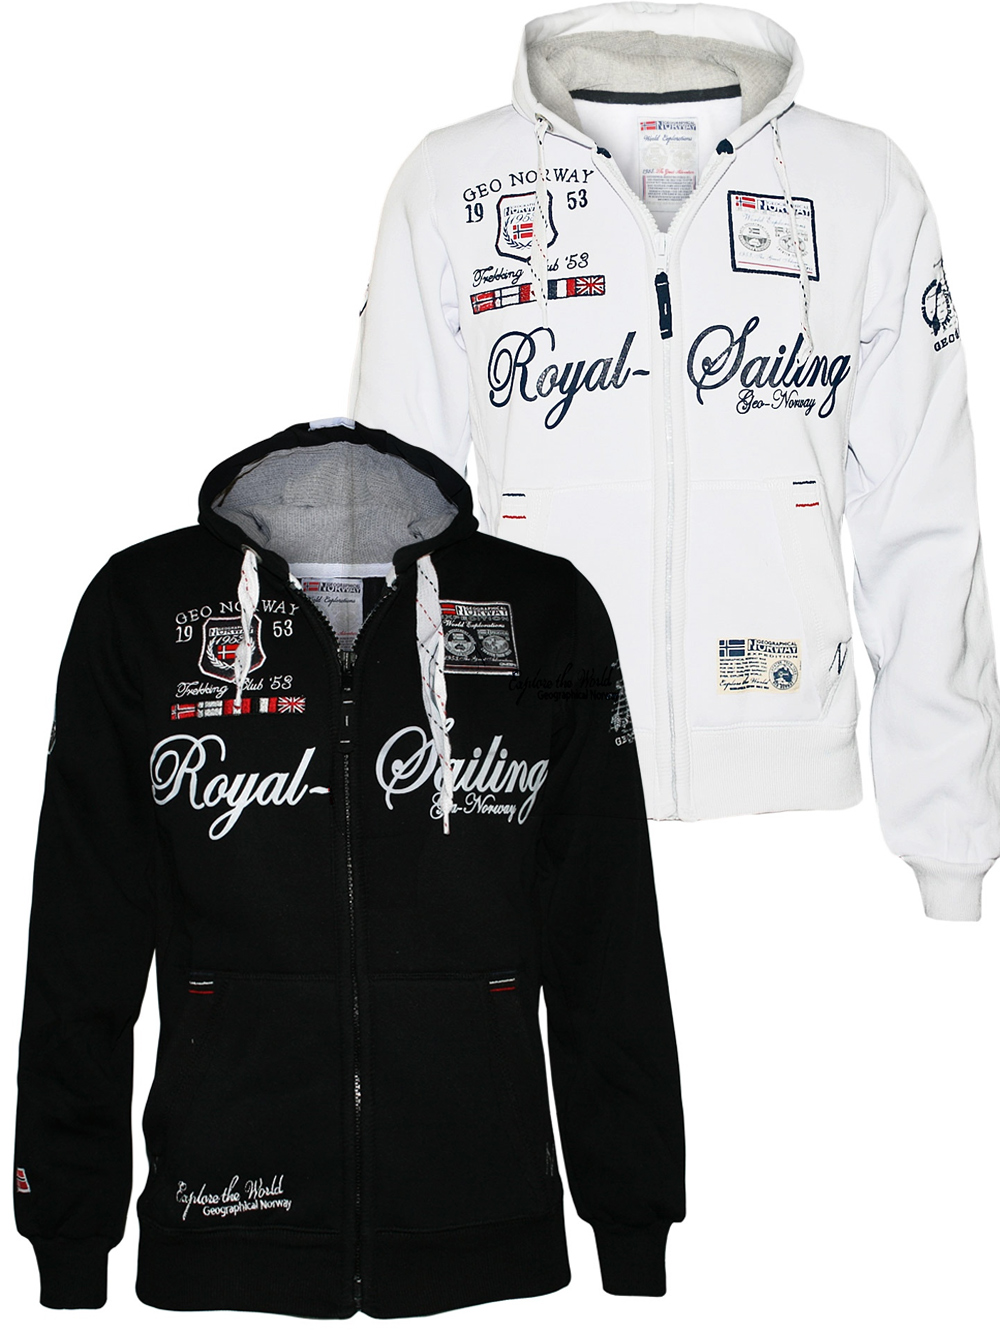 geographical norway hoodie camp sweatjacke jacke david kapuzenpullover gr m 3xl ebay. Black Bedroom Furniture Sets. Home Design Ideas